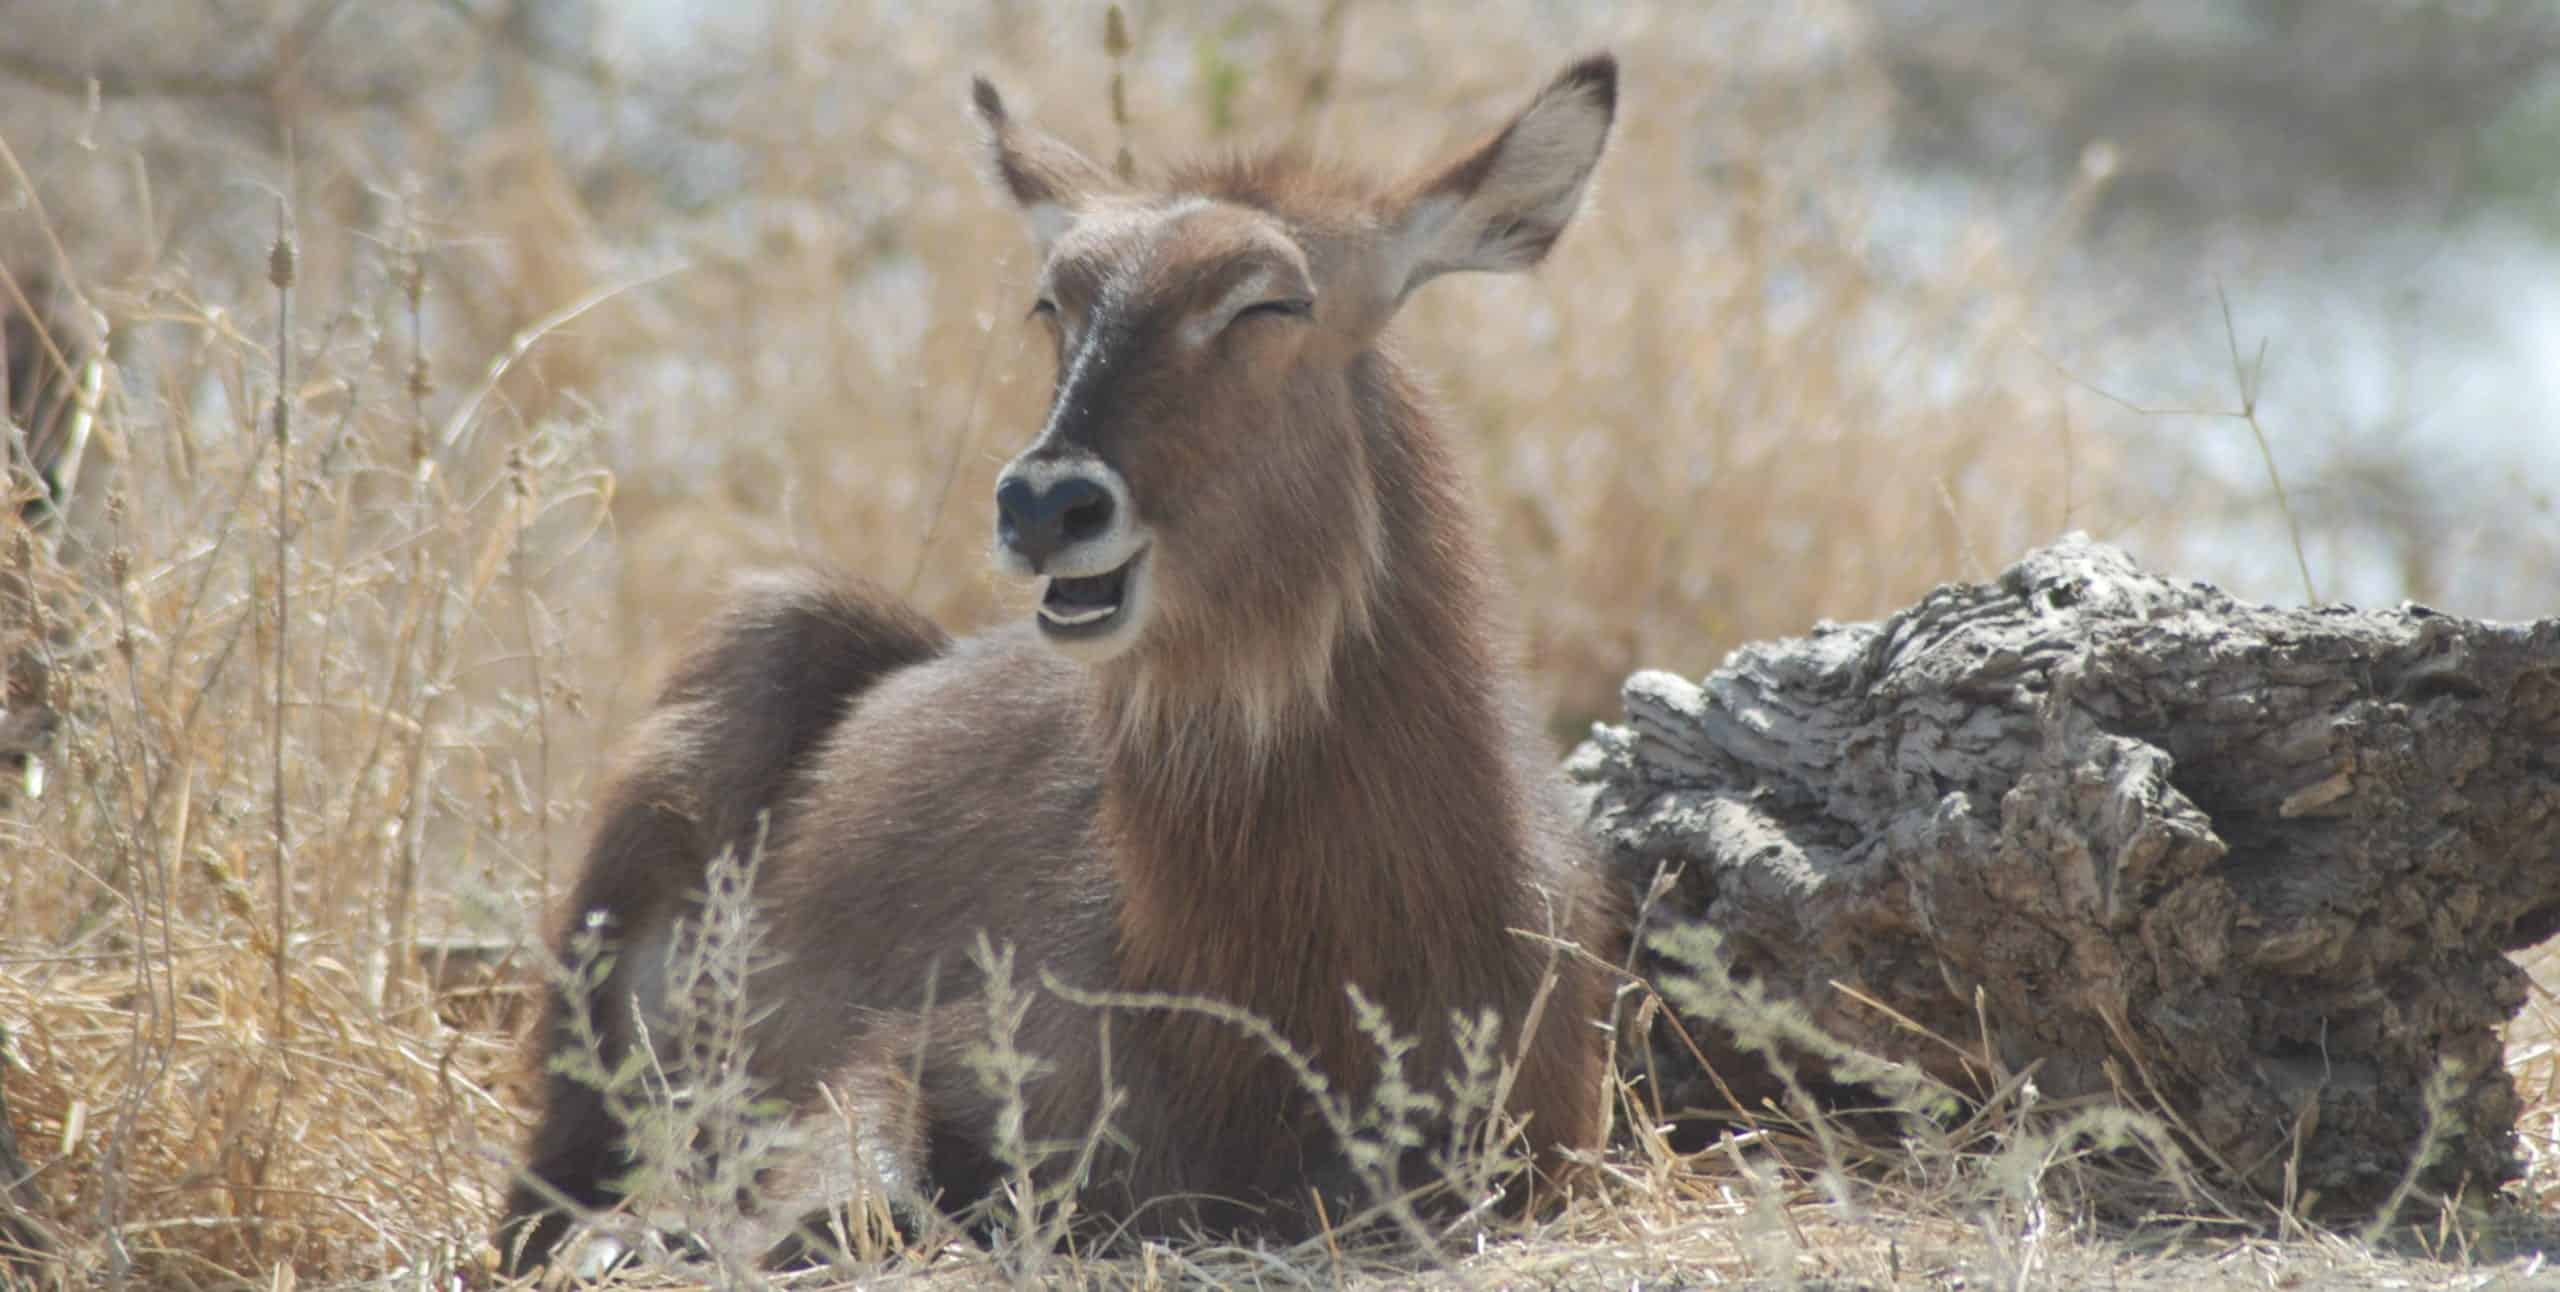 Laughing waterbuck in Serengeti